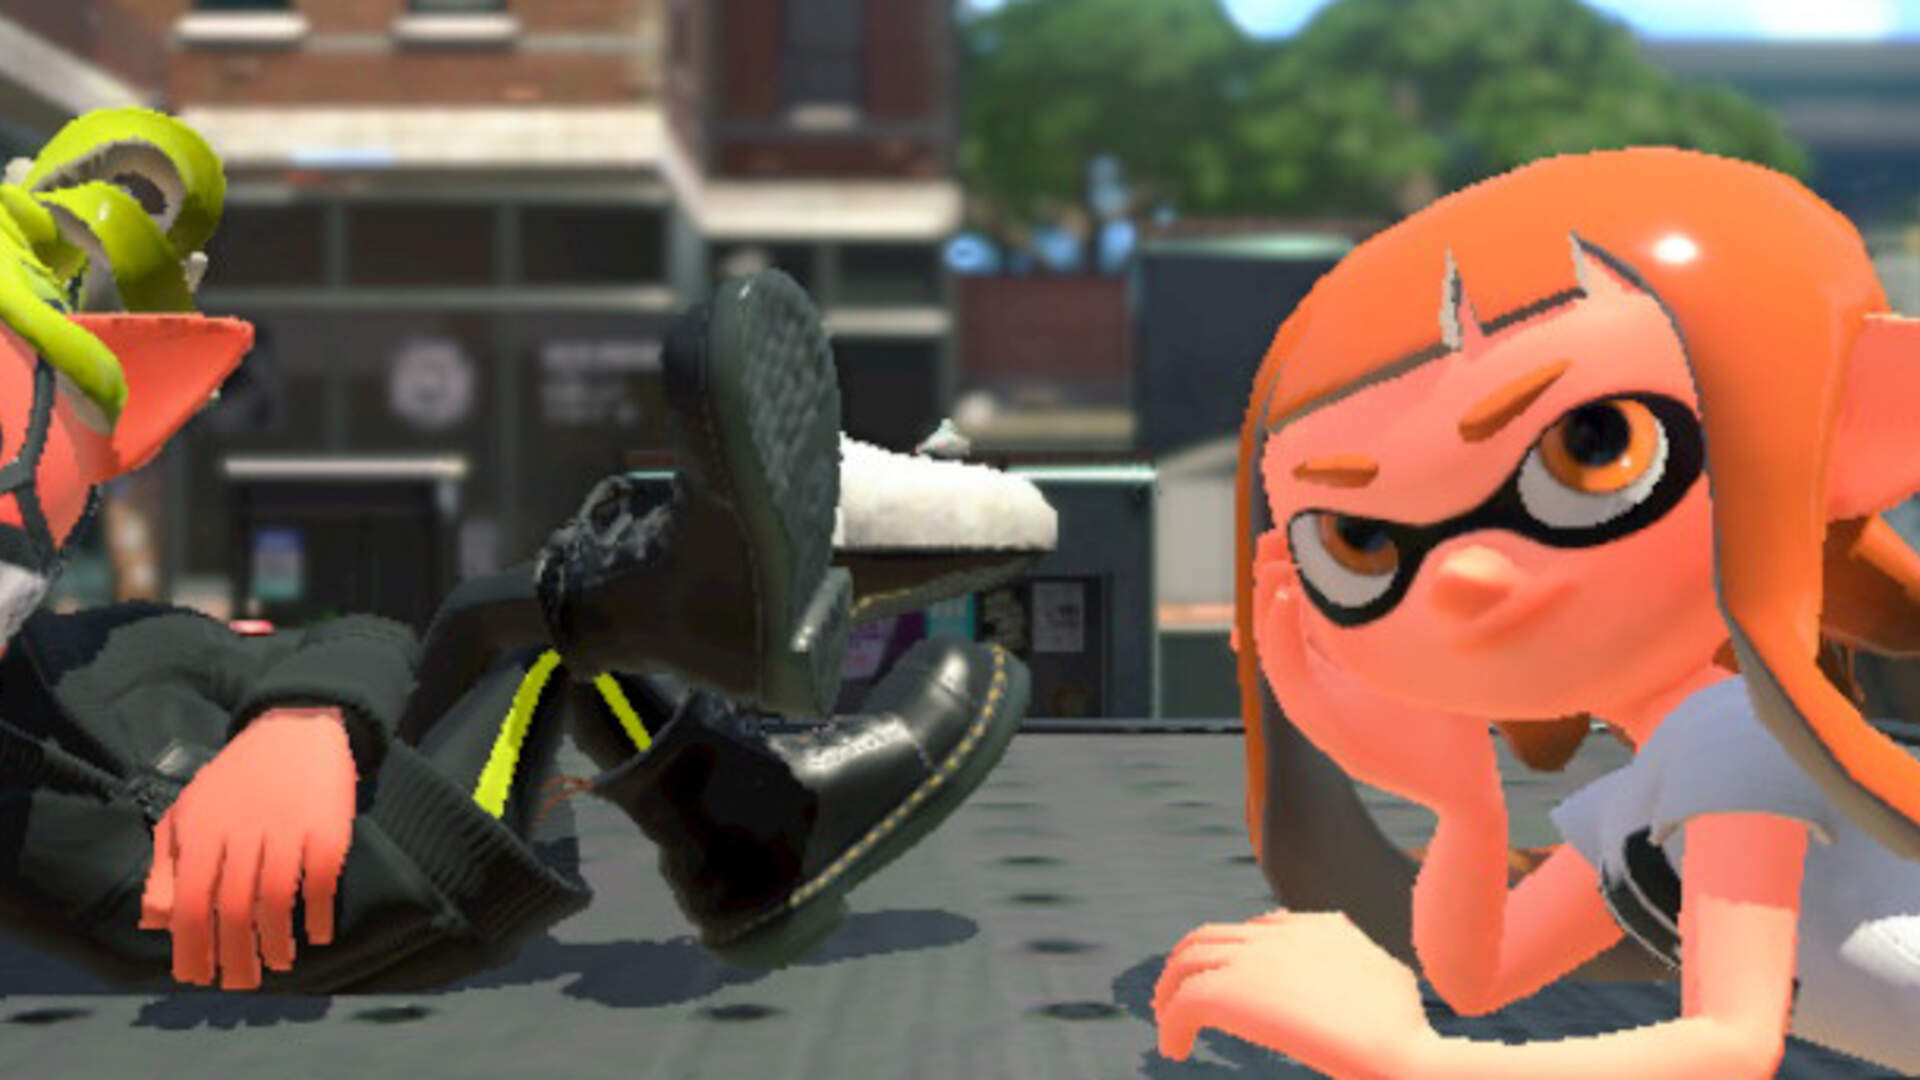 Splatoon 2 Is Finally Starting to Feel Like an Actual Sequel